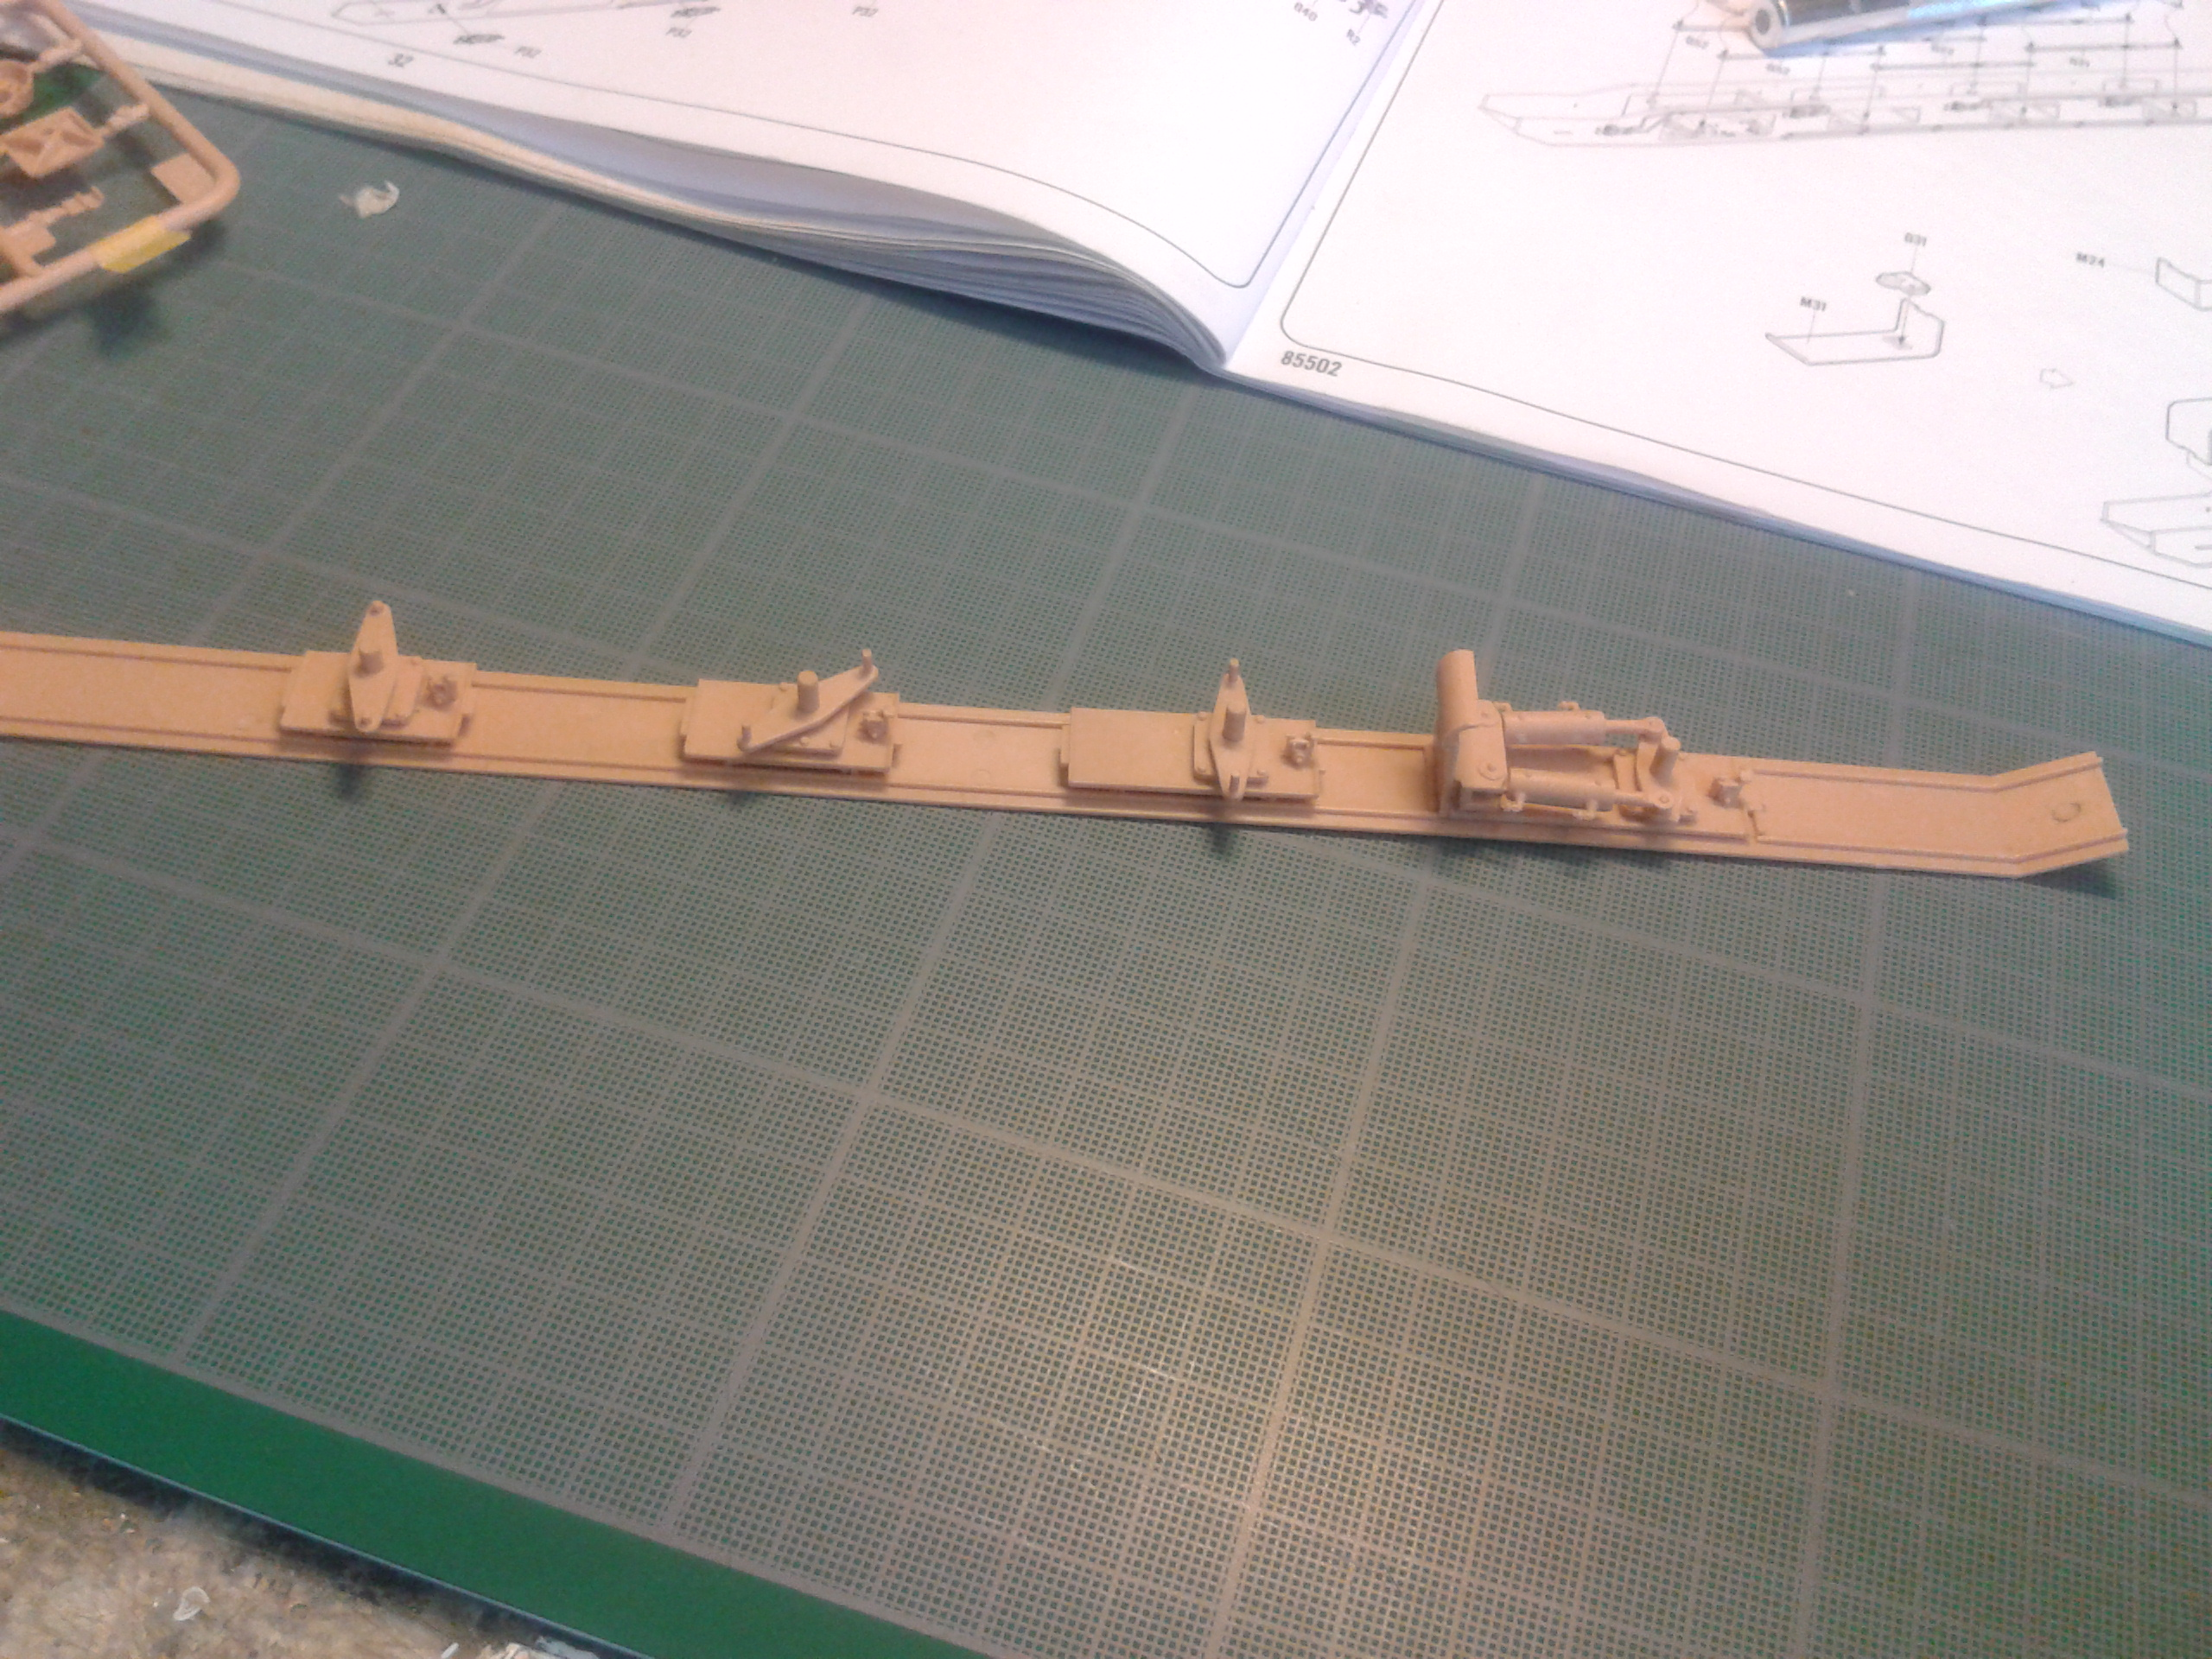 M1070 Truck Tractor & M1000 Semi-Trailer By T-bird!!!!! 1/35 Hobby Boss.Up du01/02.... - Page 4 135tp